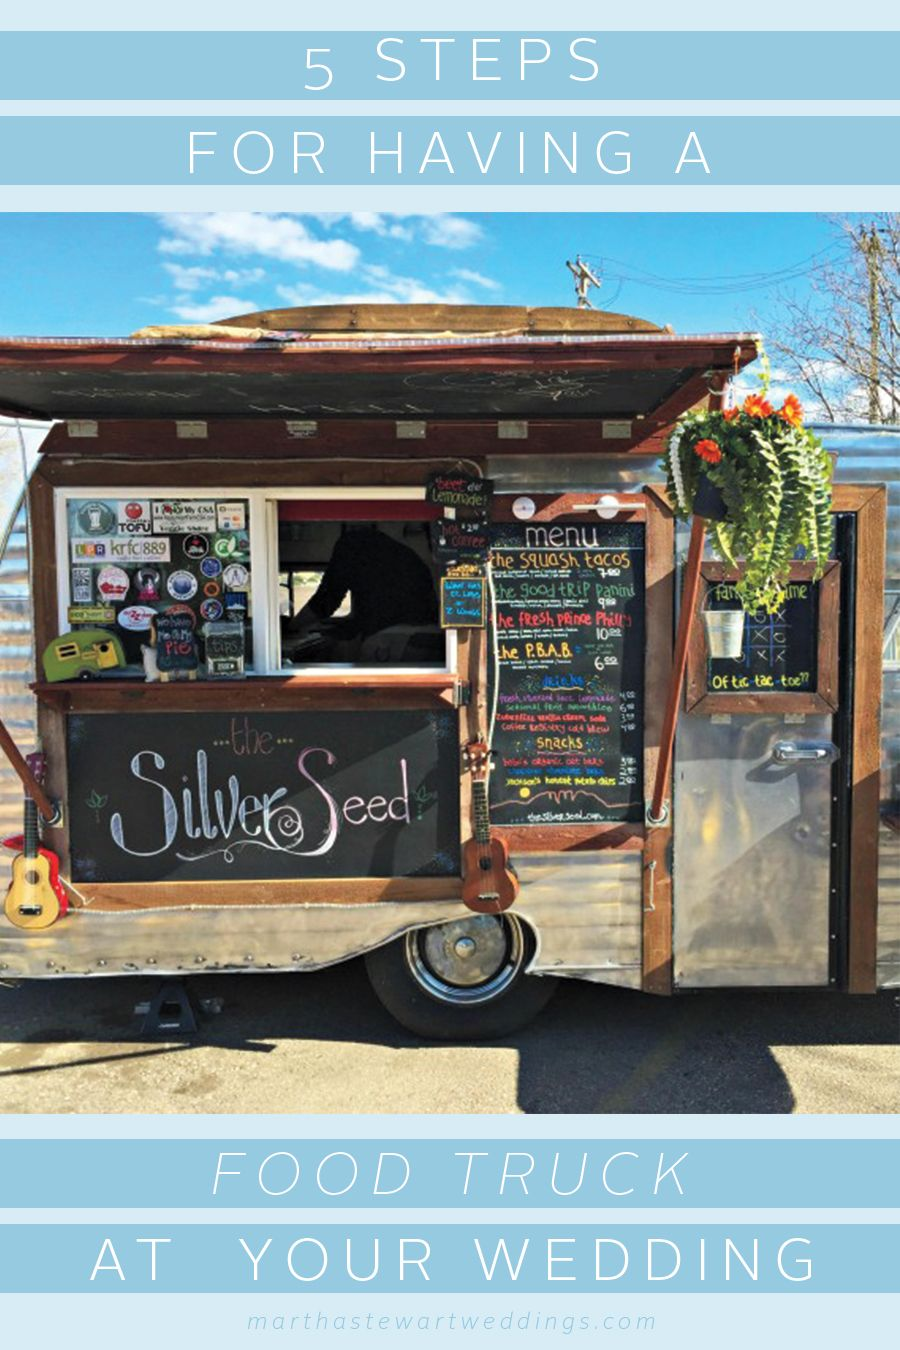 5 Tips for Having a Food Truck at Your Wedding Food